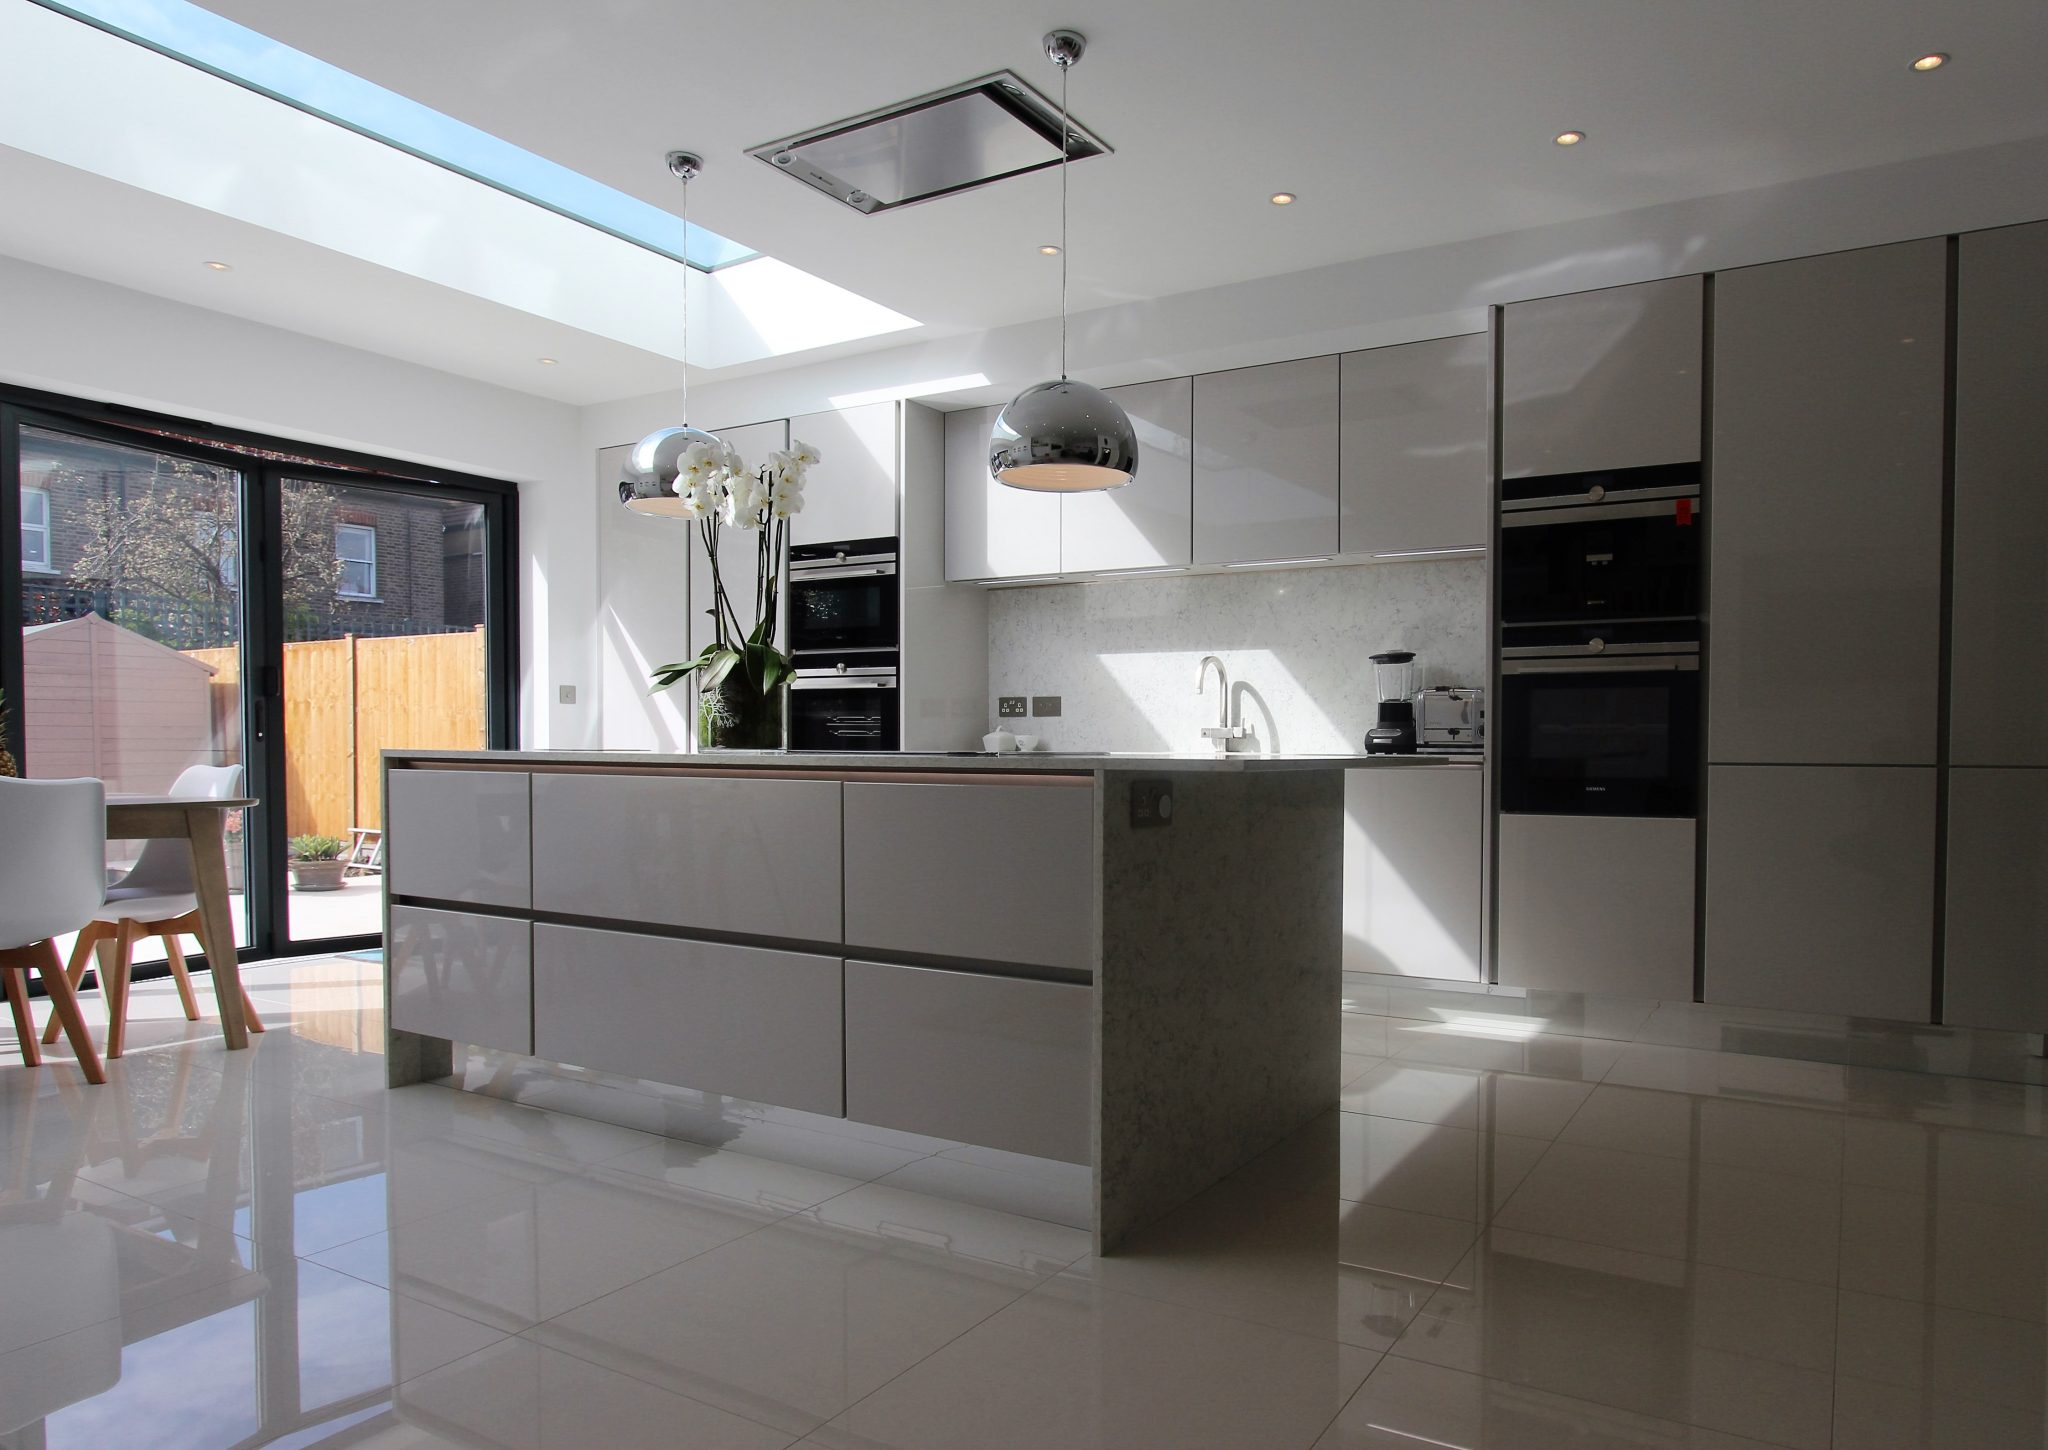 Handle less german kitchen raynes park richmond kitchens for German kitchen appliances brands